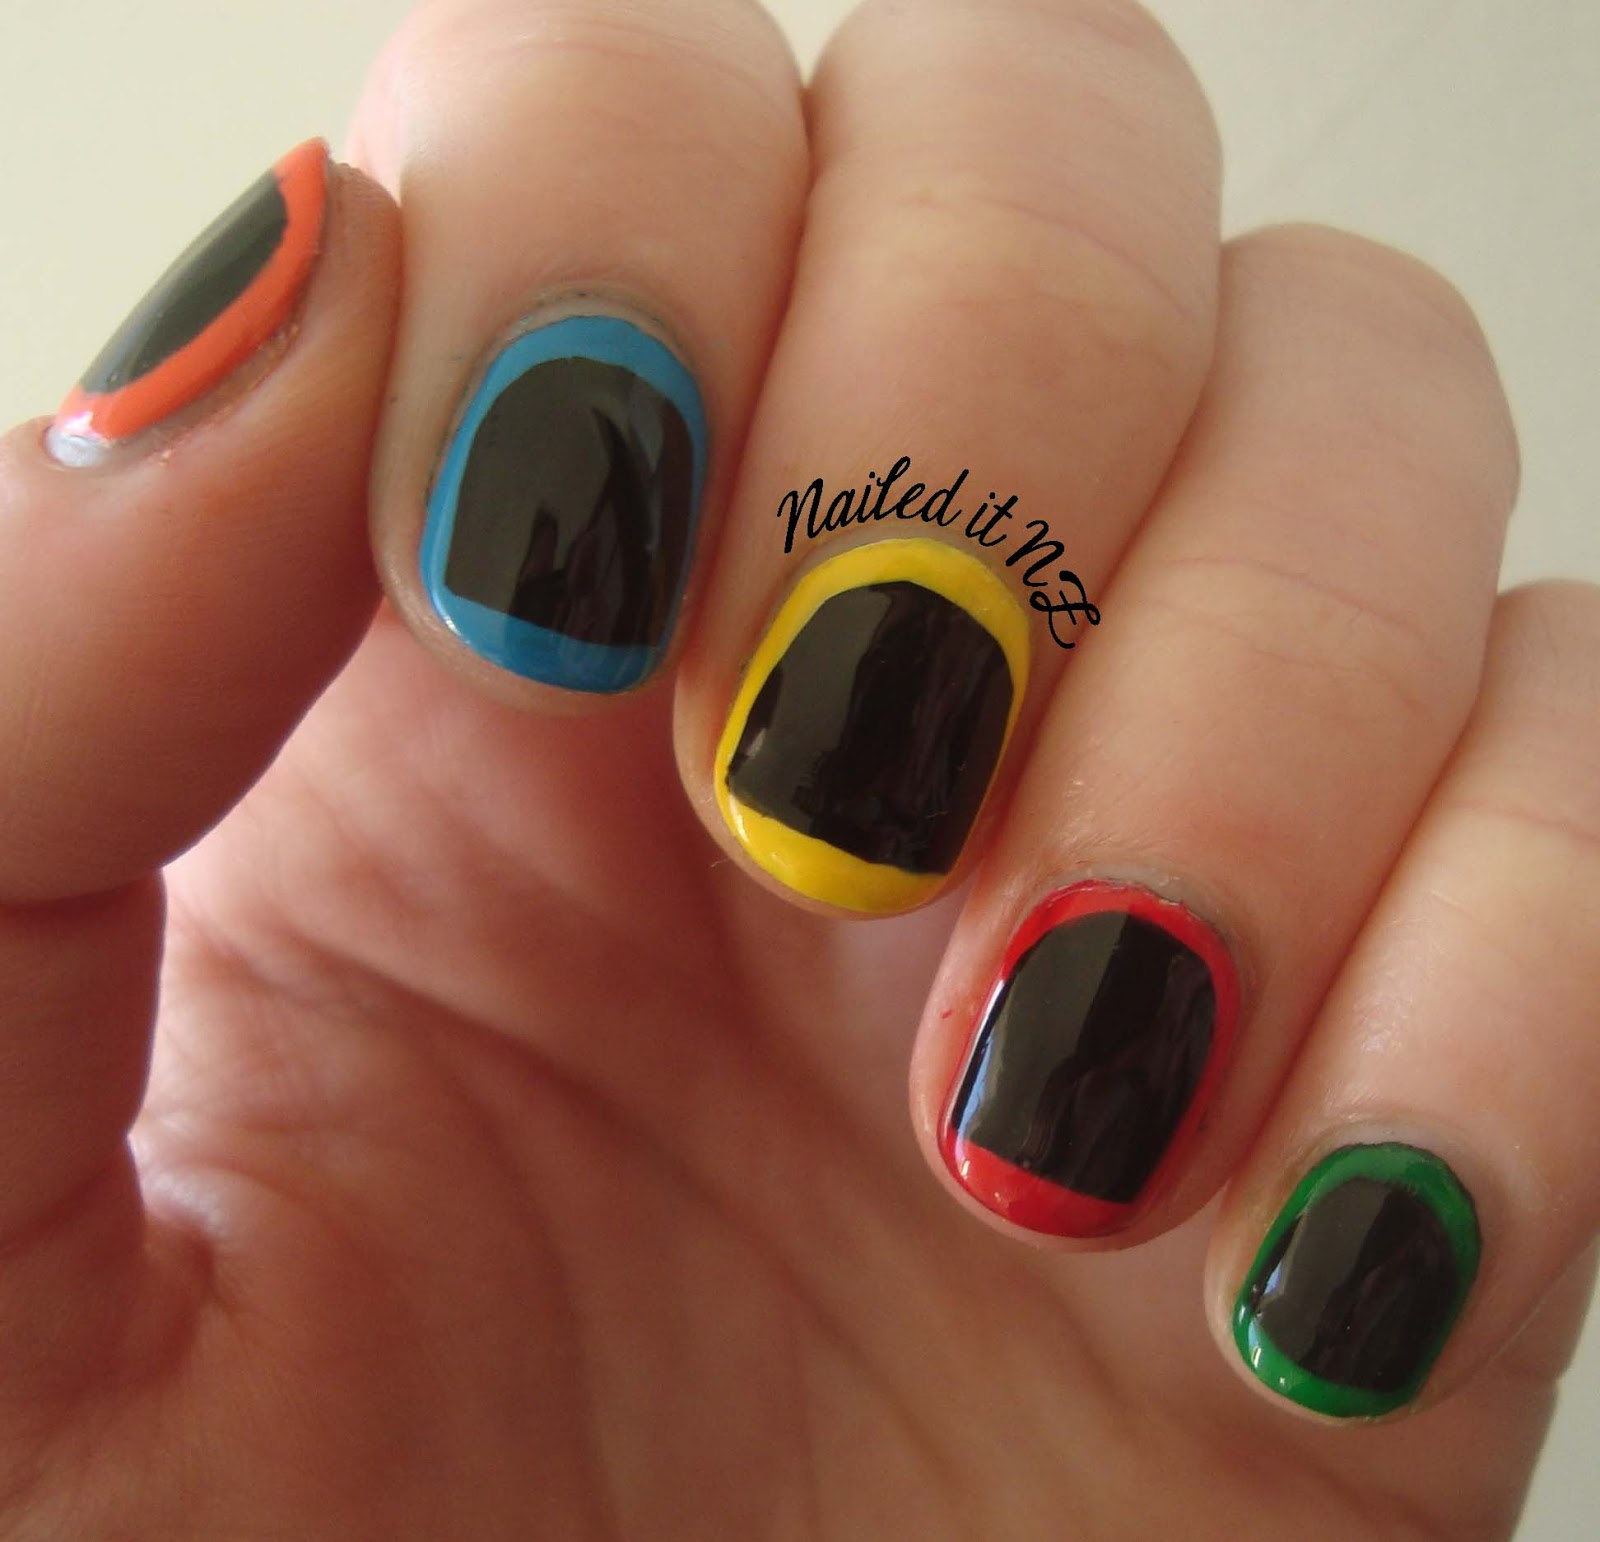 Nail art for short nails 2 guitar hero nails nailed it nz prinsesfo Gallery